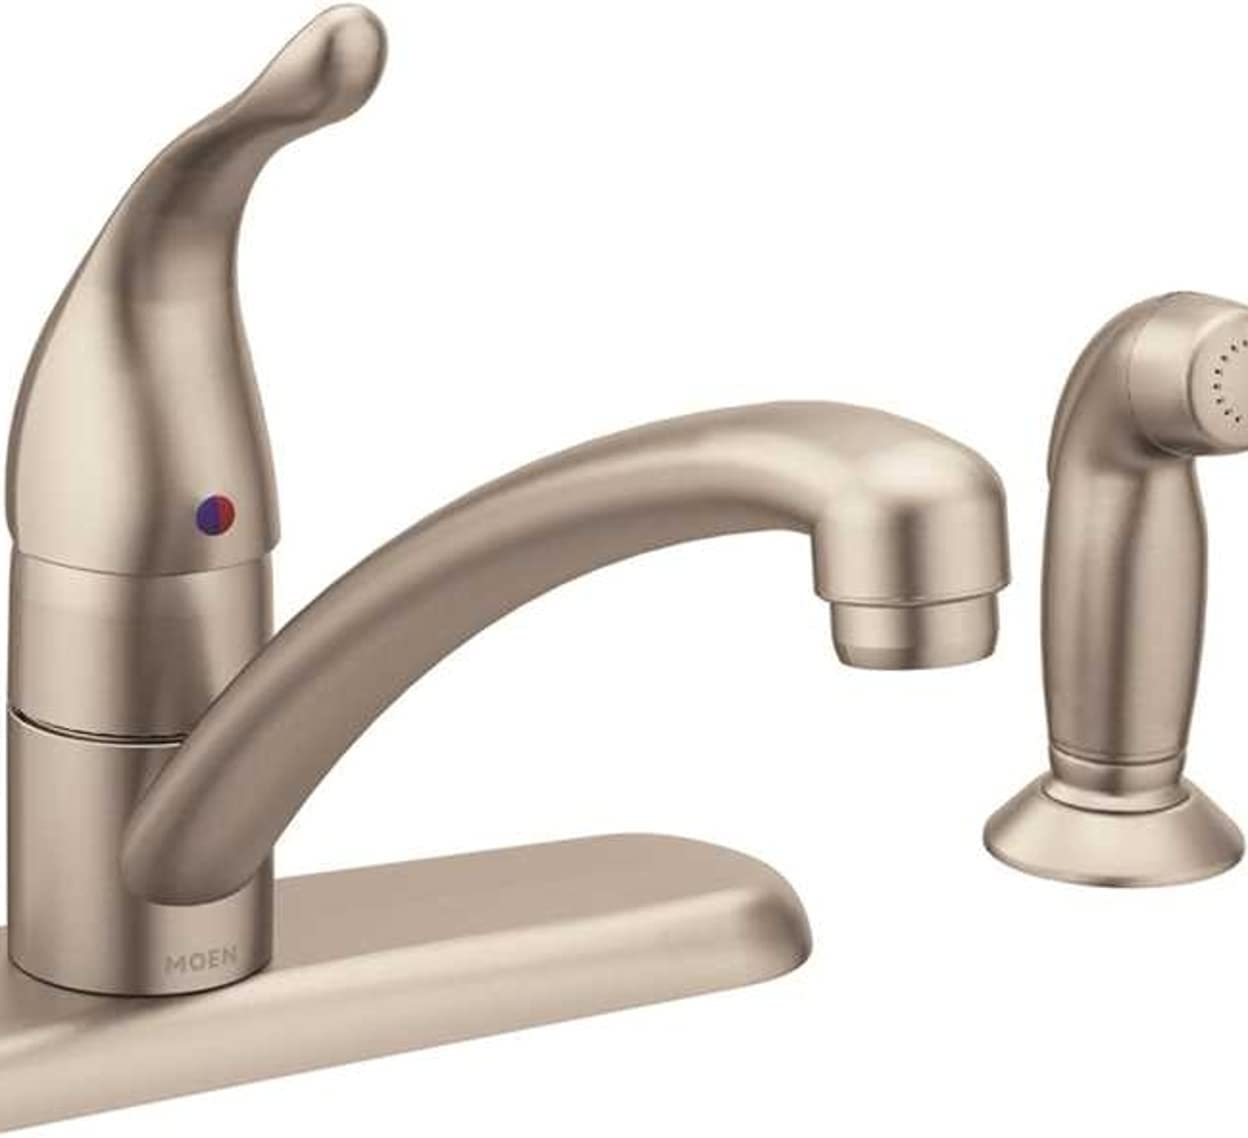 moen 7430srs chateau one handle low arc kitchen faucet with side sprayer spot resist stainless